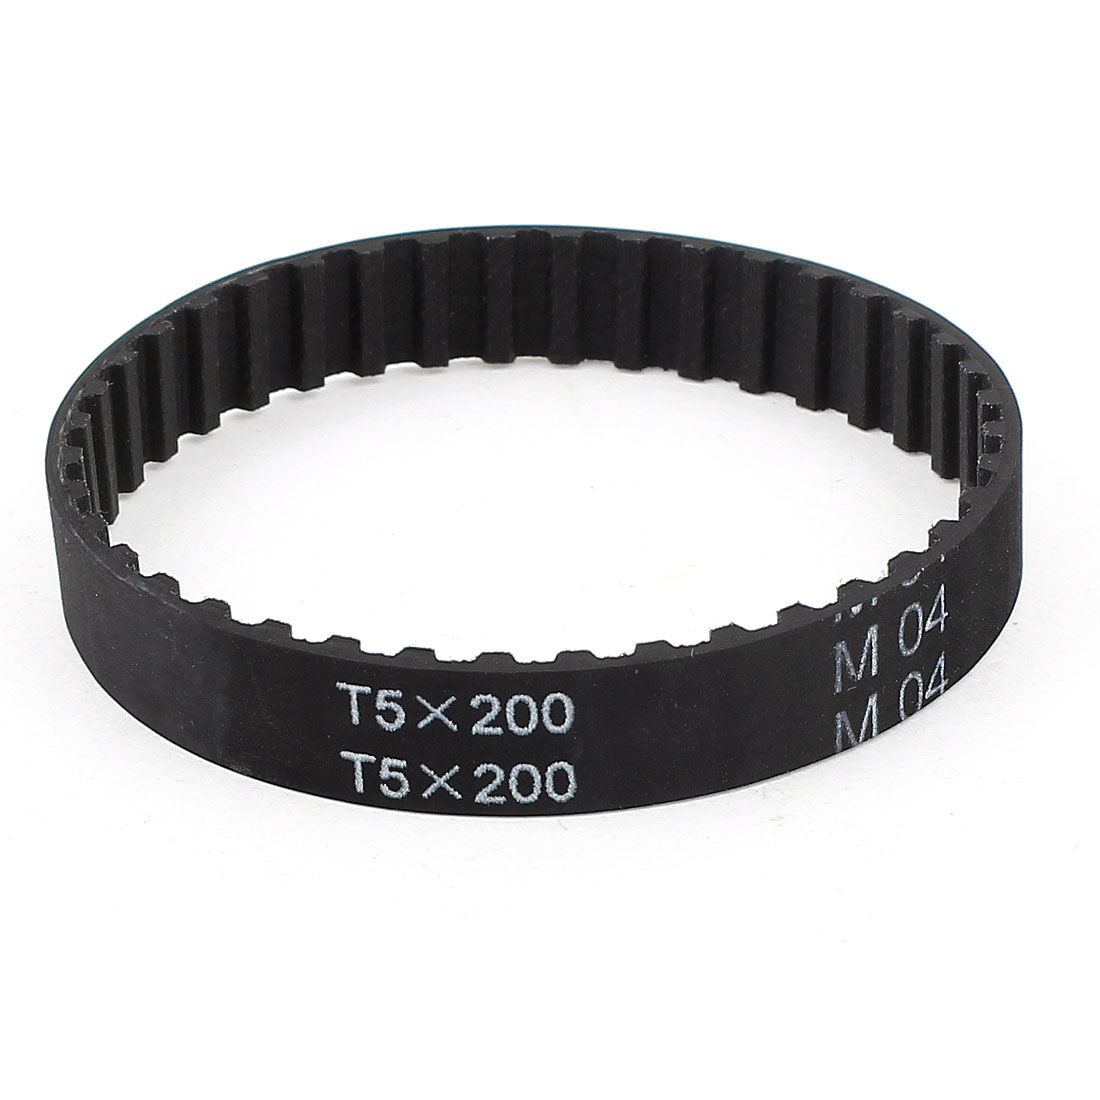 T5x200 40 Teeth 5mm Pitch Rubber Cogged Industrial Timing Belt 200mm